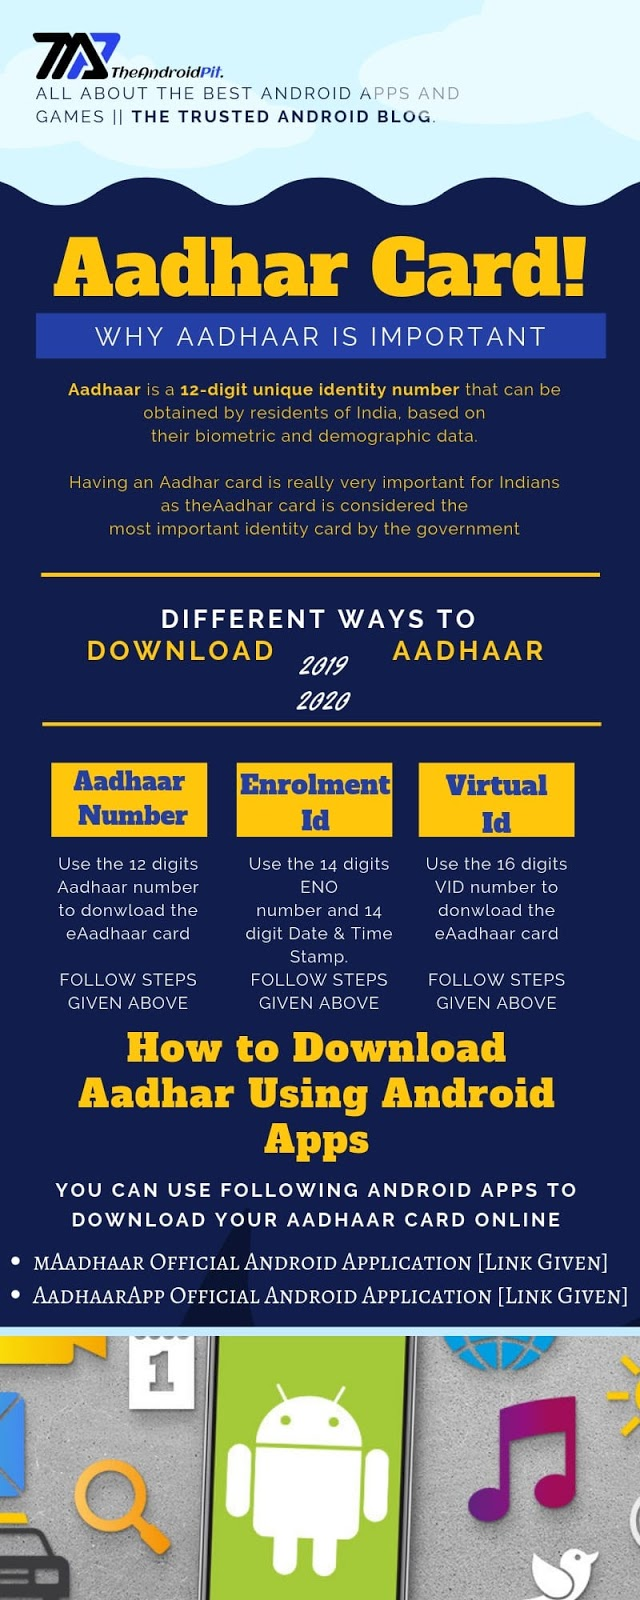 Aadhar Card Download Android Apps, Aadhar Card Download Using Android, Aadhar Card Download